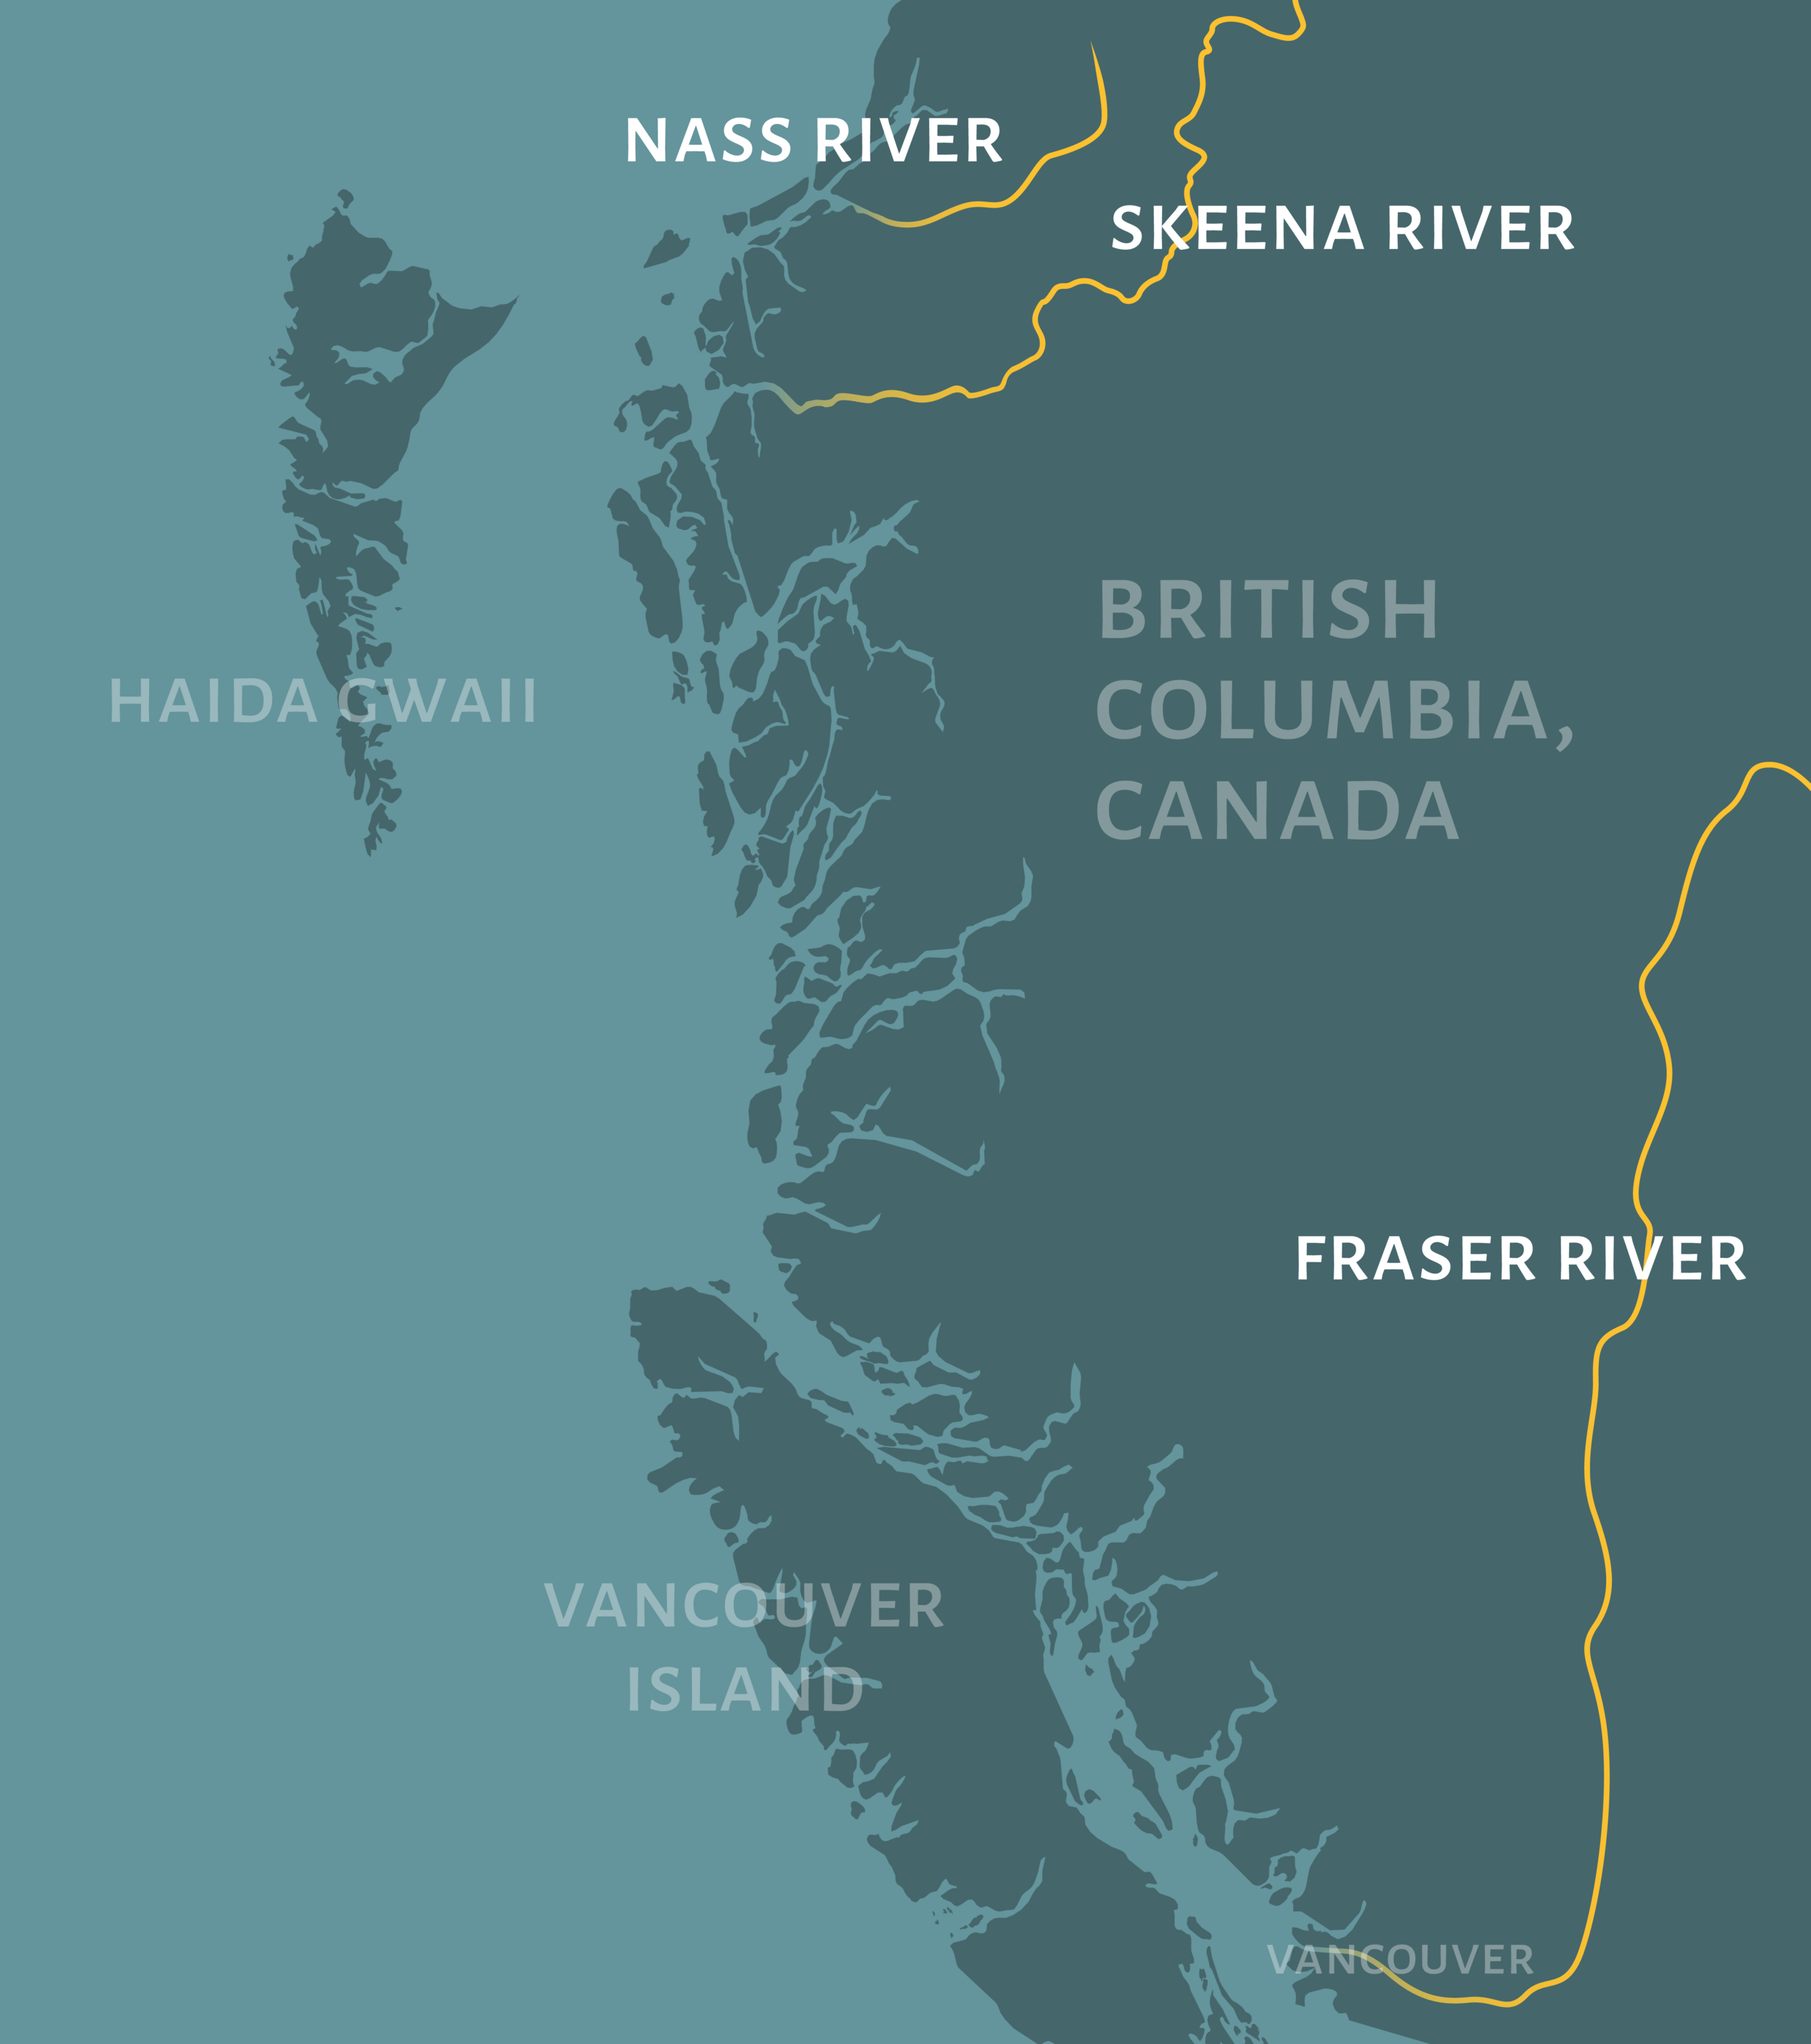 Fish populations in the    Fraser River   ,    Skeena River    and    Nass River    are in decline.